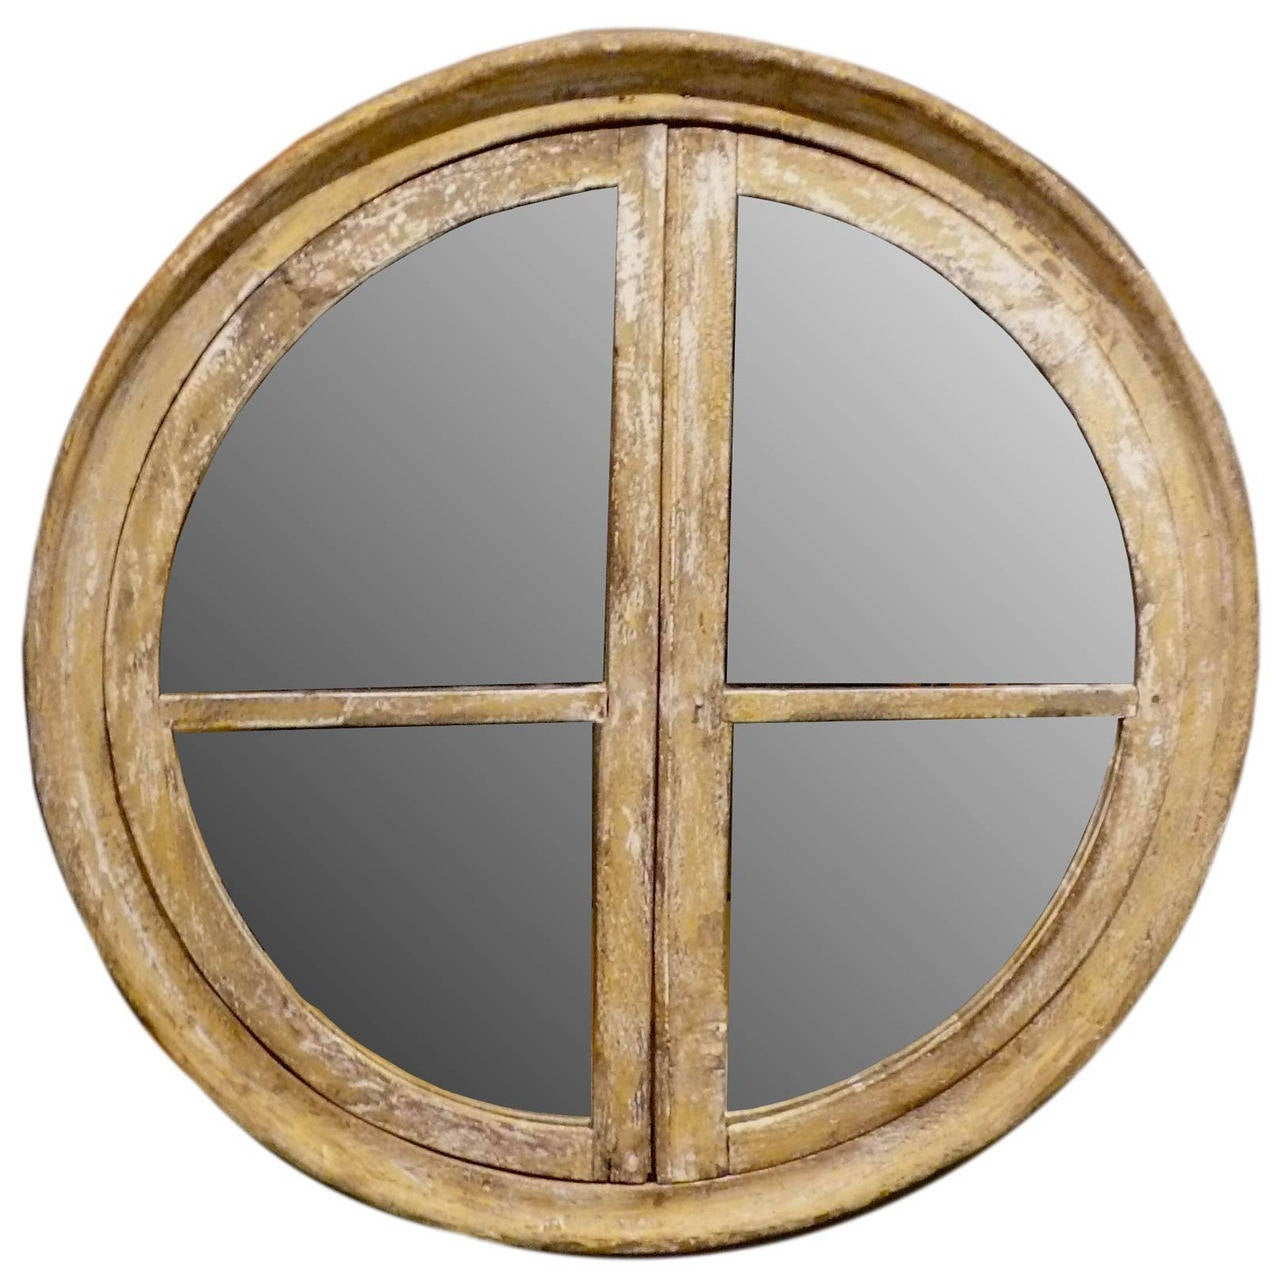 Round Mirrors For Sale Round Wooden Frame Mirror For Sale At 1stdibs